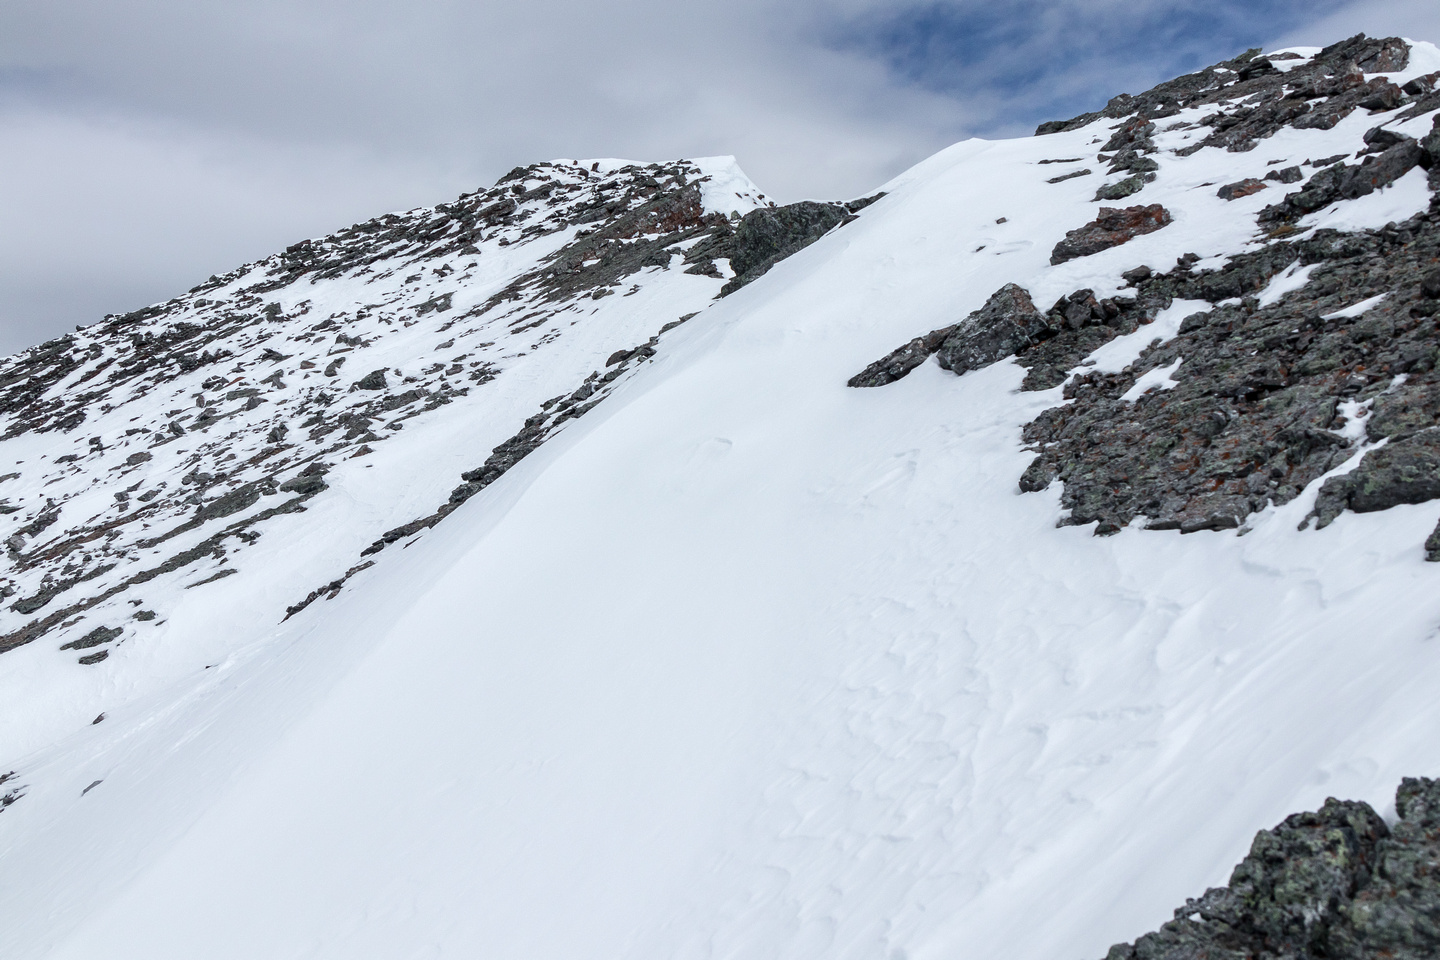 Some slabby snow to the summit.